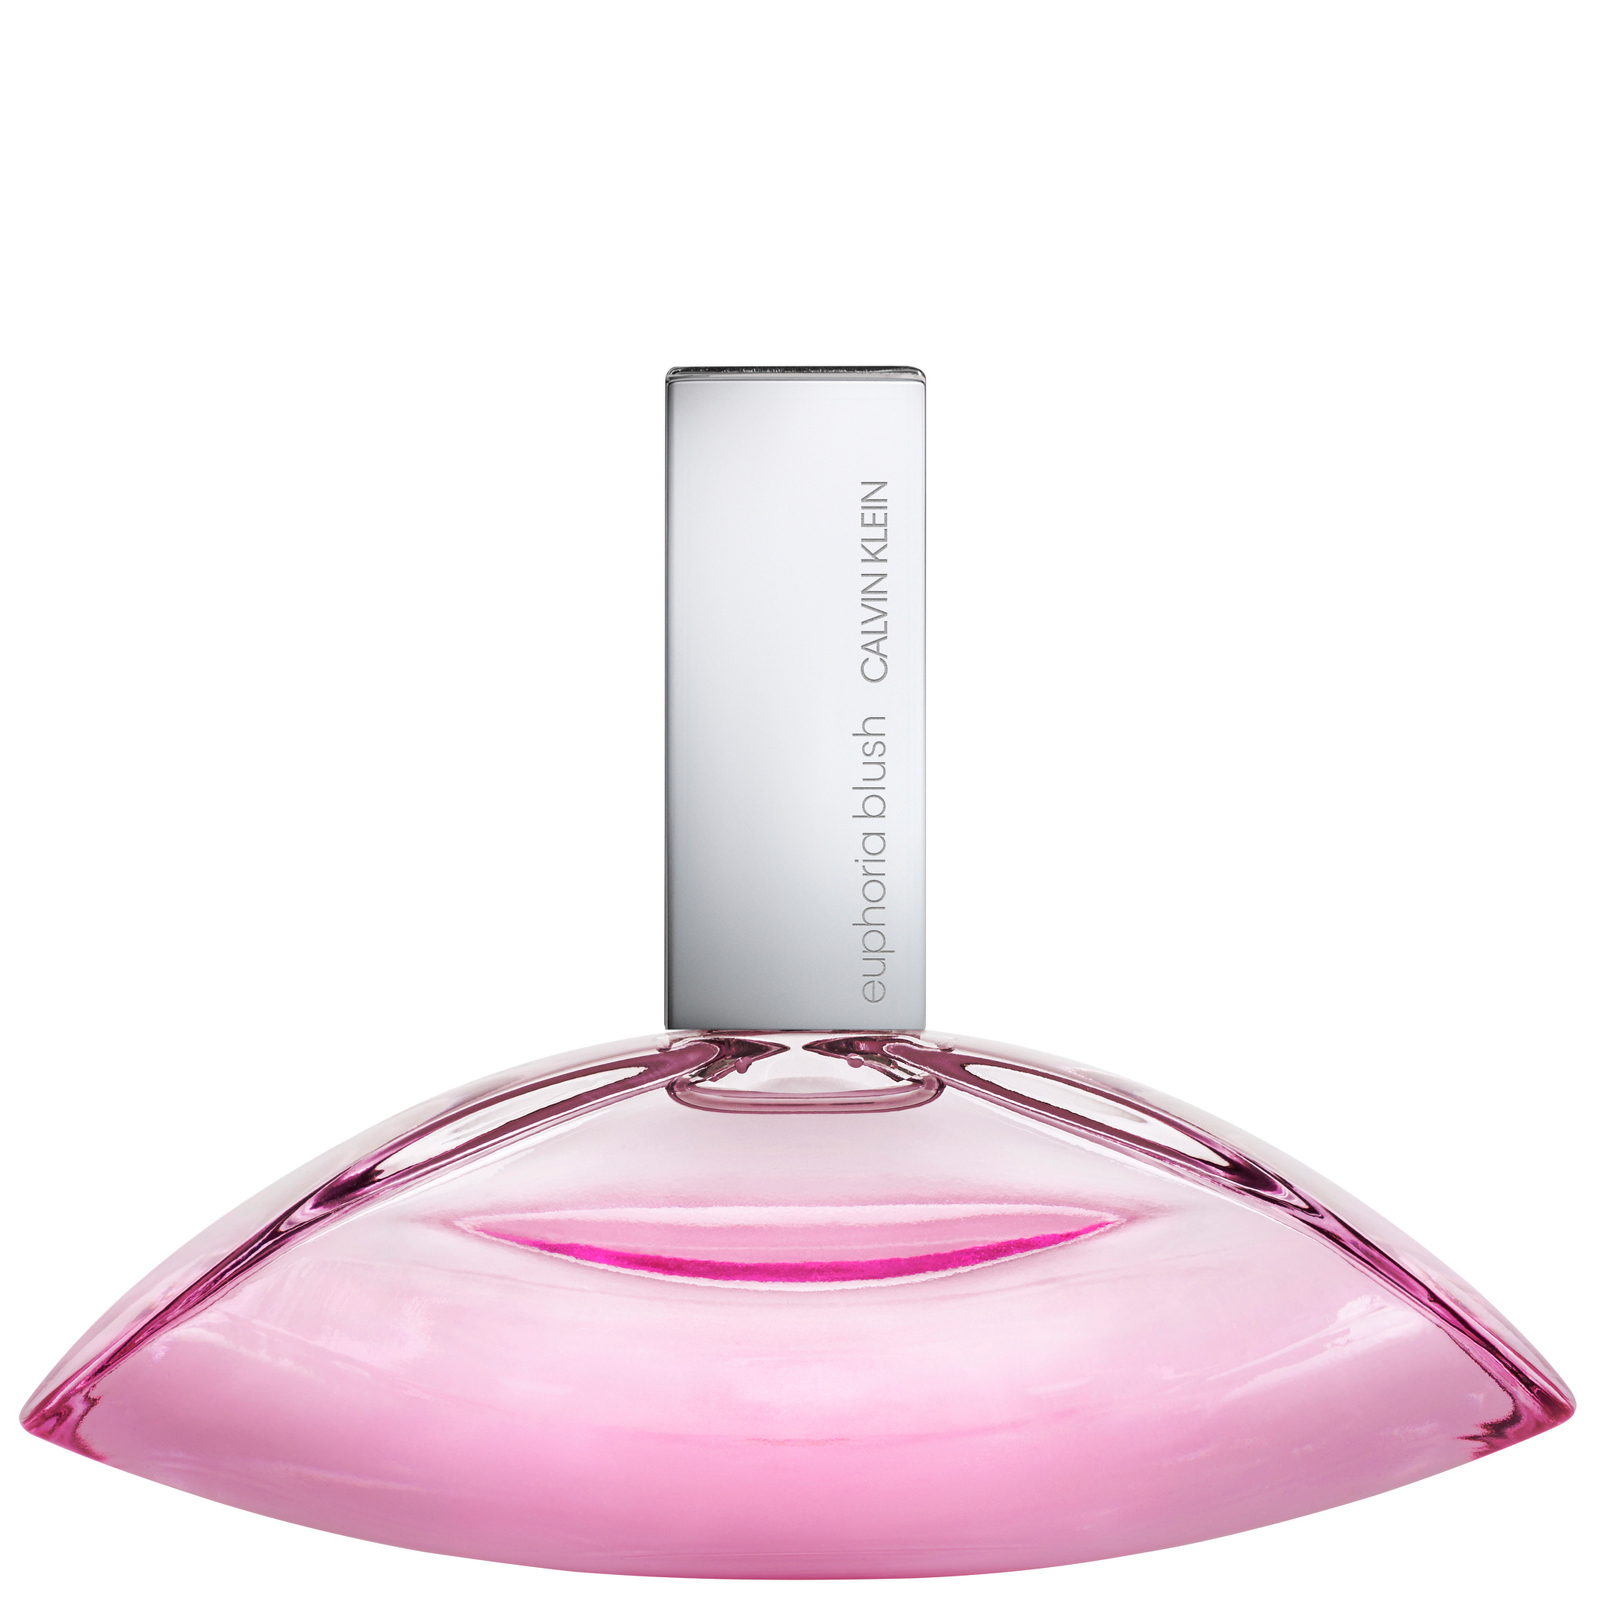 Calvin Klein Euphoria Blush For Women Eau de Parfum Spray 100ml